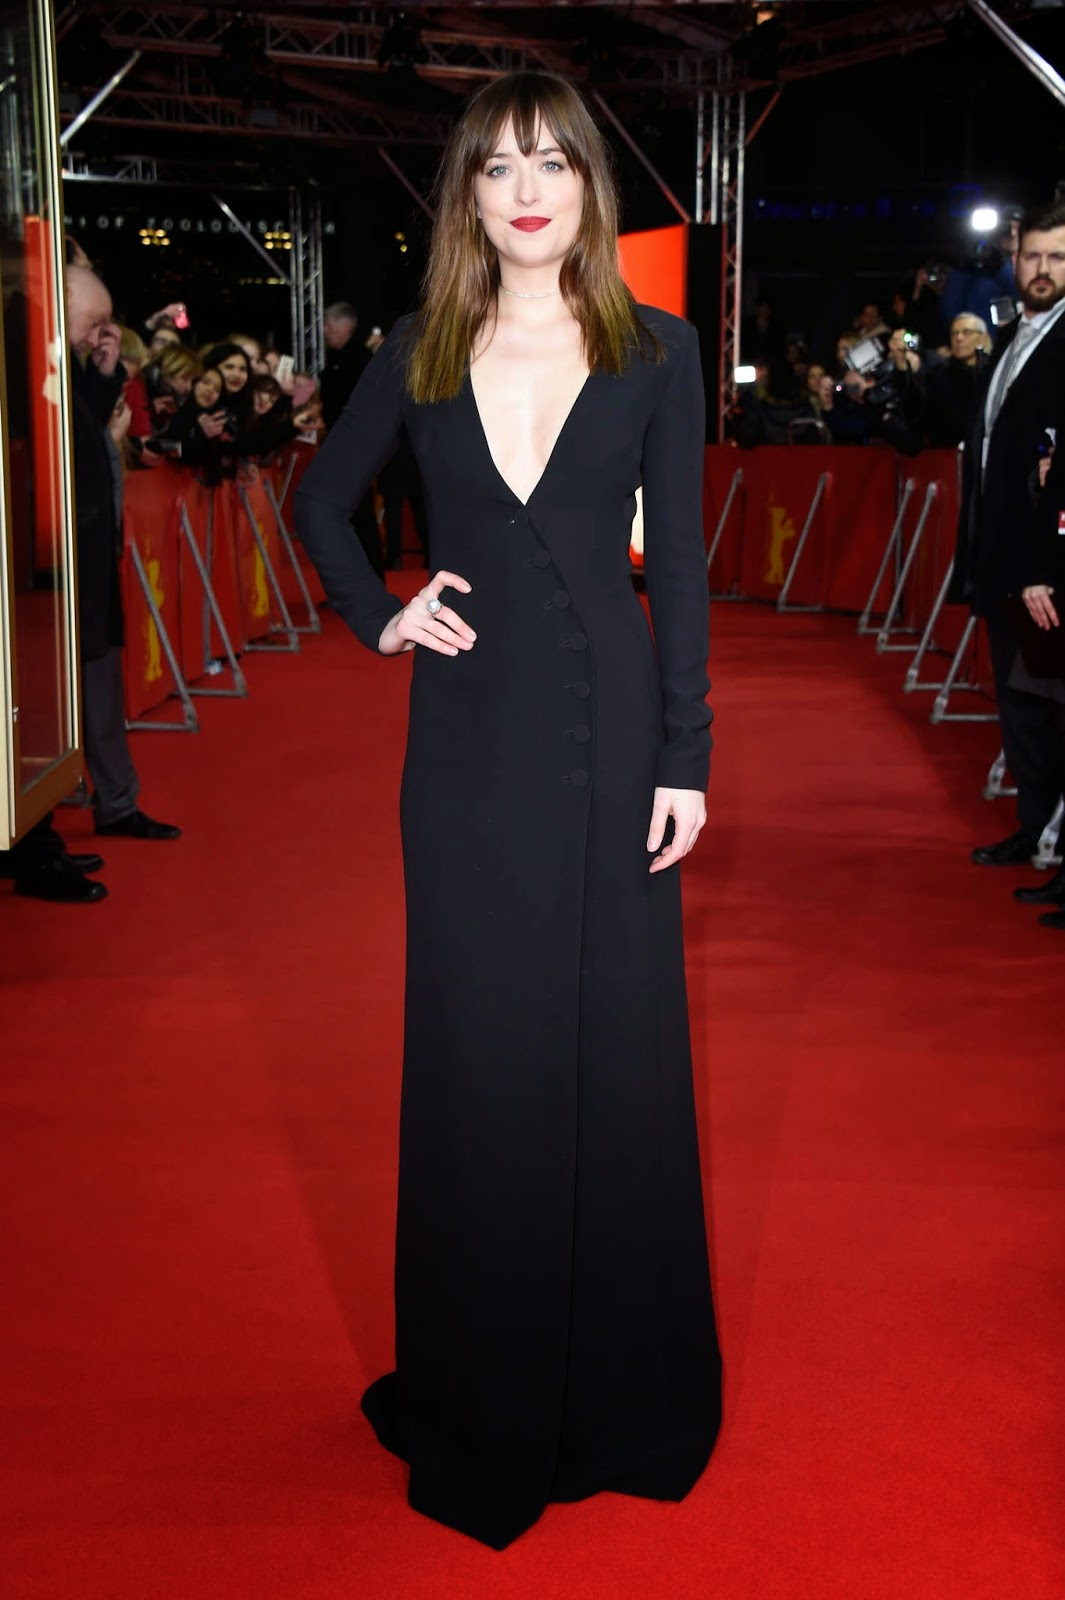 Dakota Johnson wears a plunging Dior dress to the 'Fifty Shades of Grey' Berlin Film Festival premiere